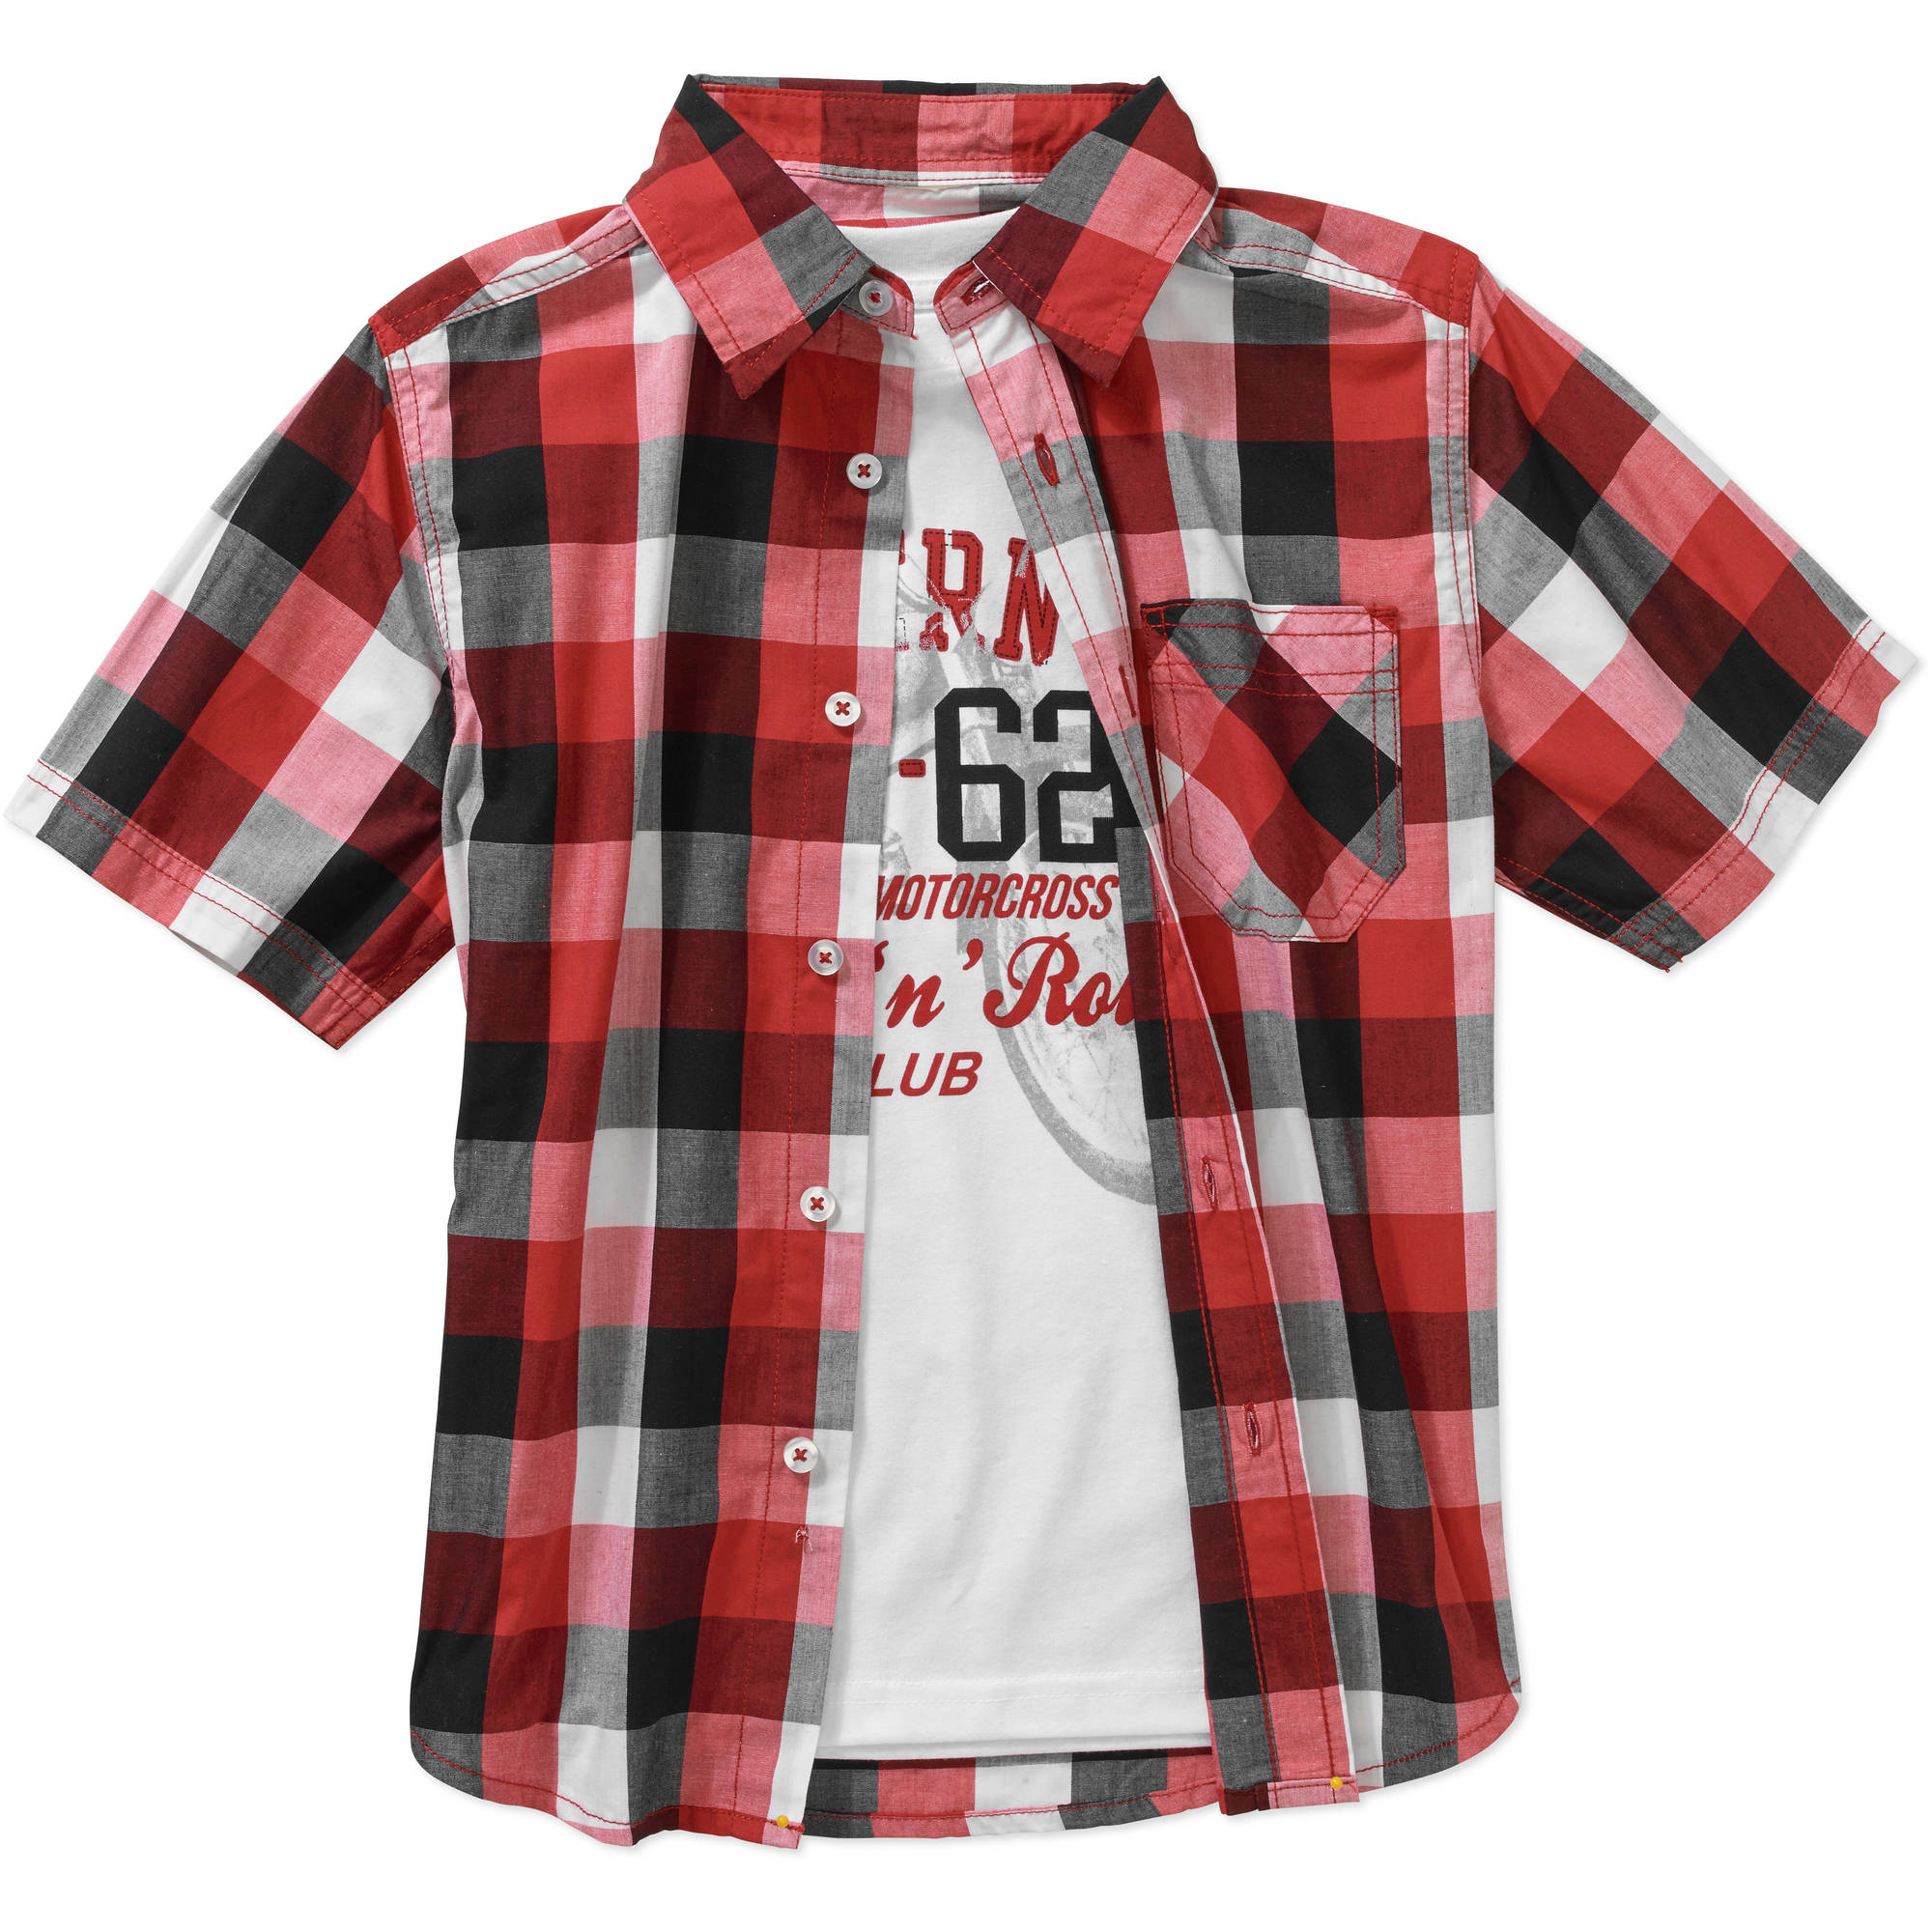 Faded Glory Boys' Short Sleeve Woven Shirt with Graphic Tee